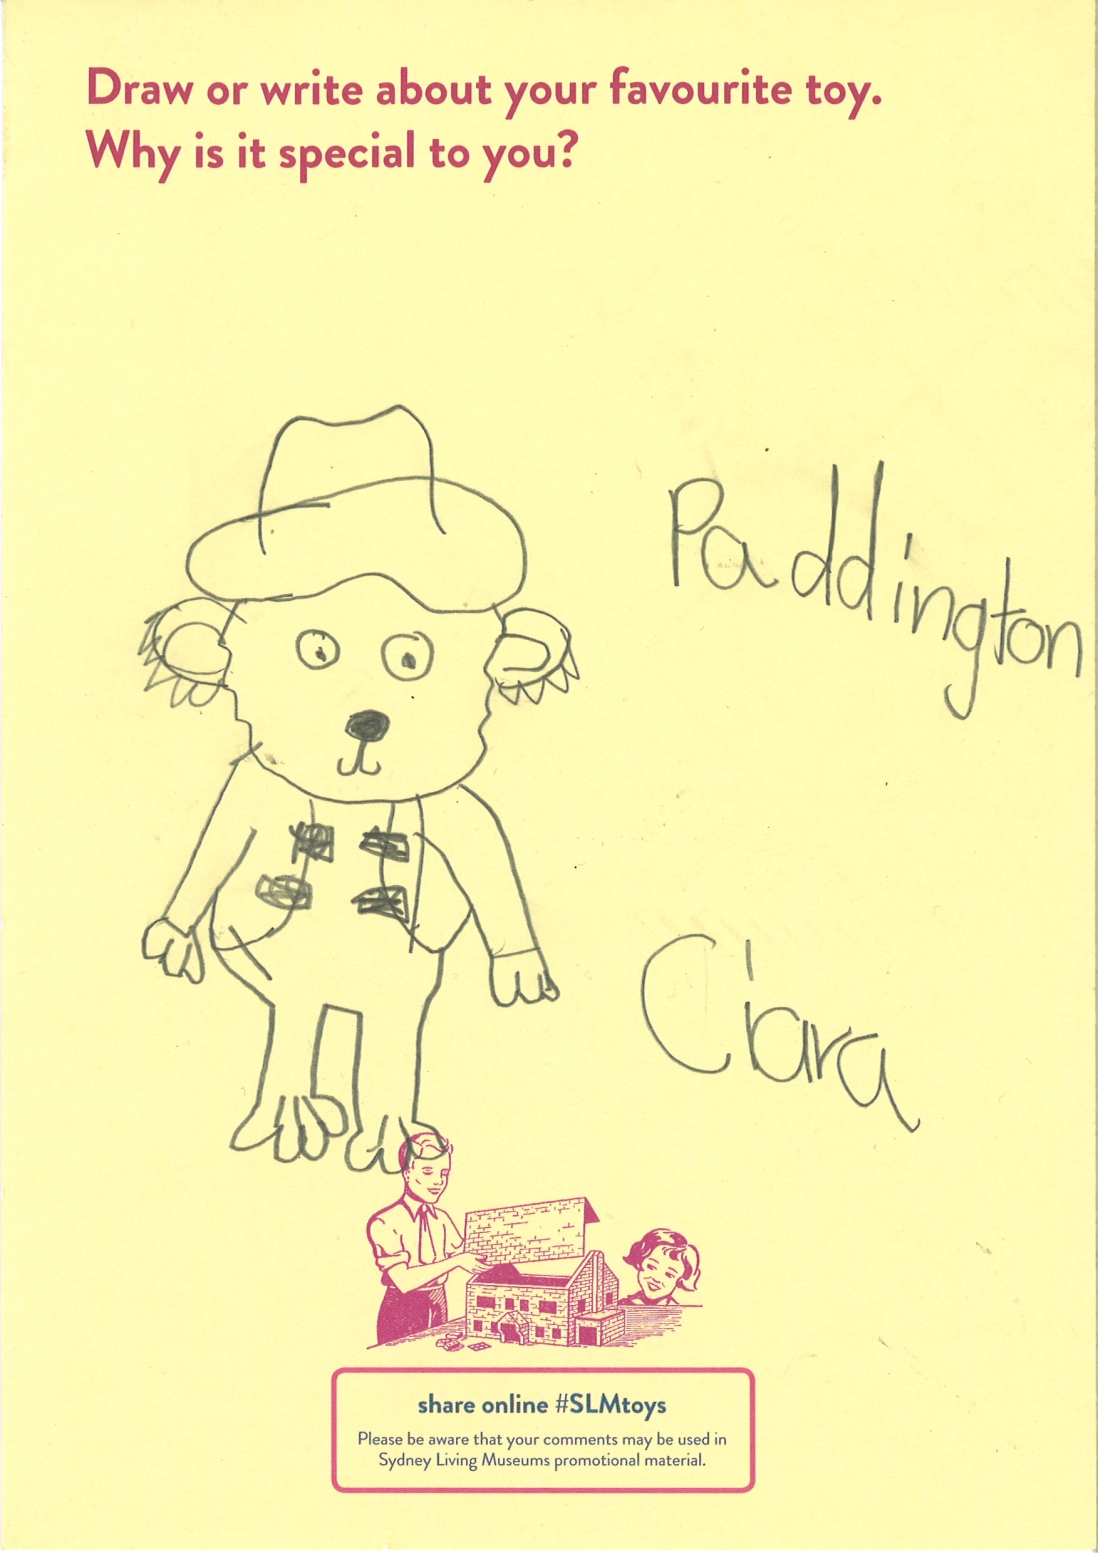 A child's drawing of Paddington Bear